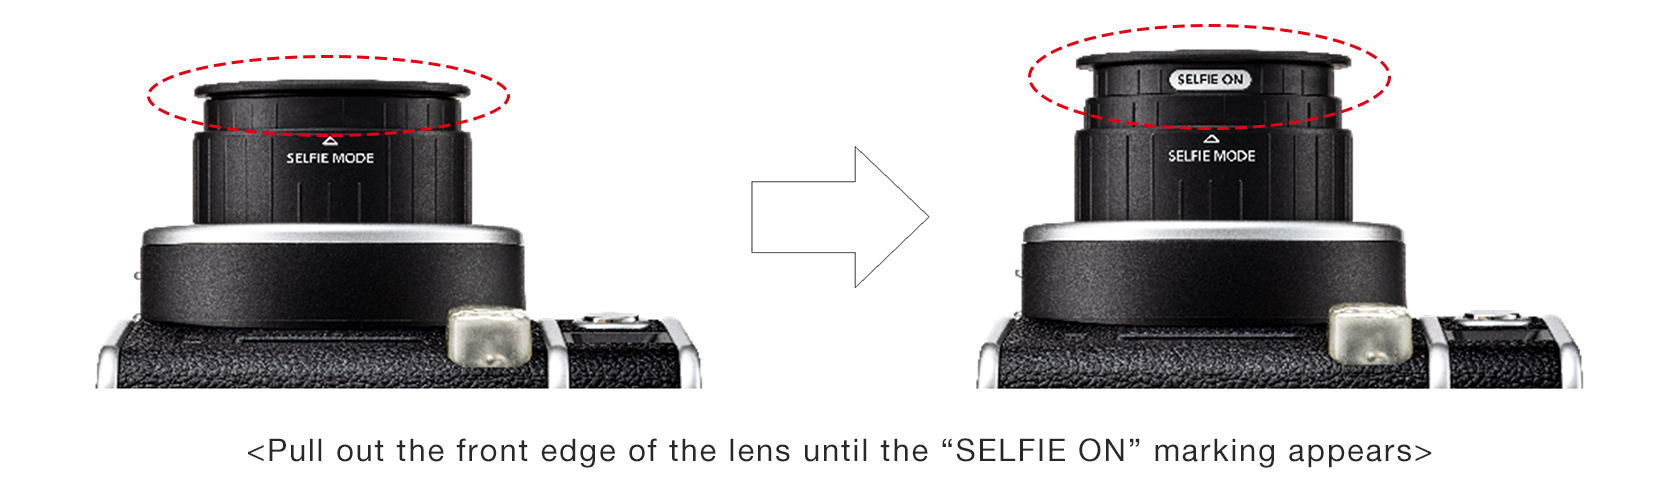 "[Image]""Selfie Mode"" for taking selfies and close-ups with ease"